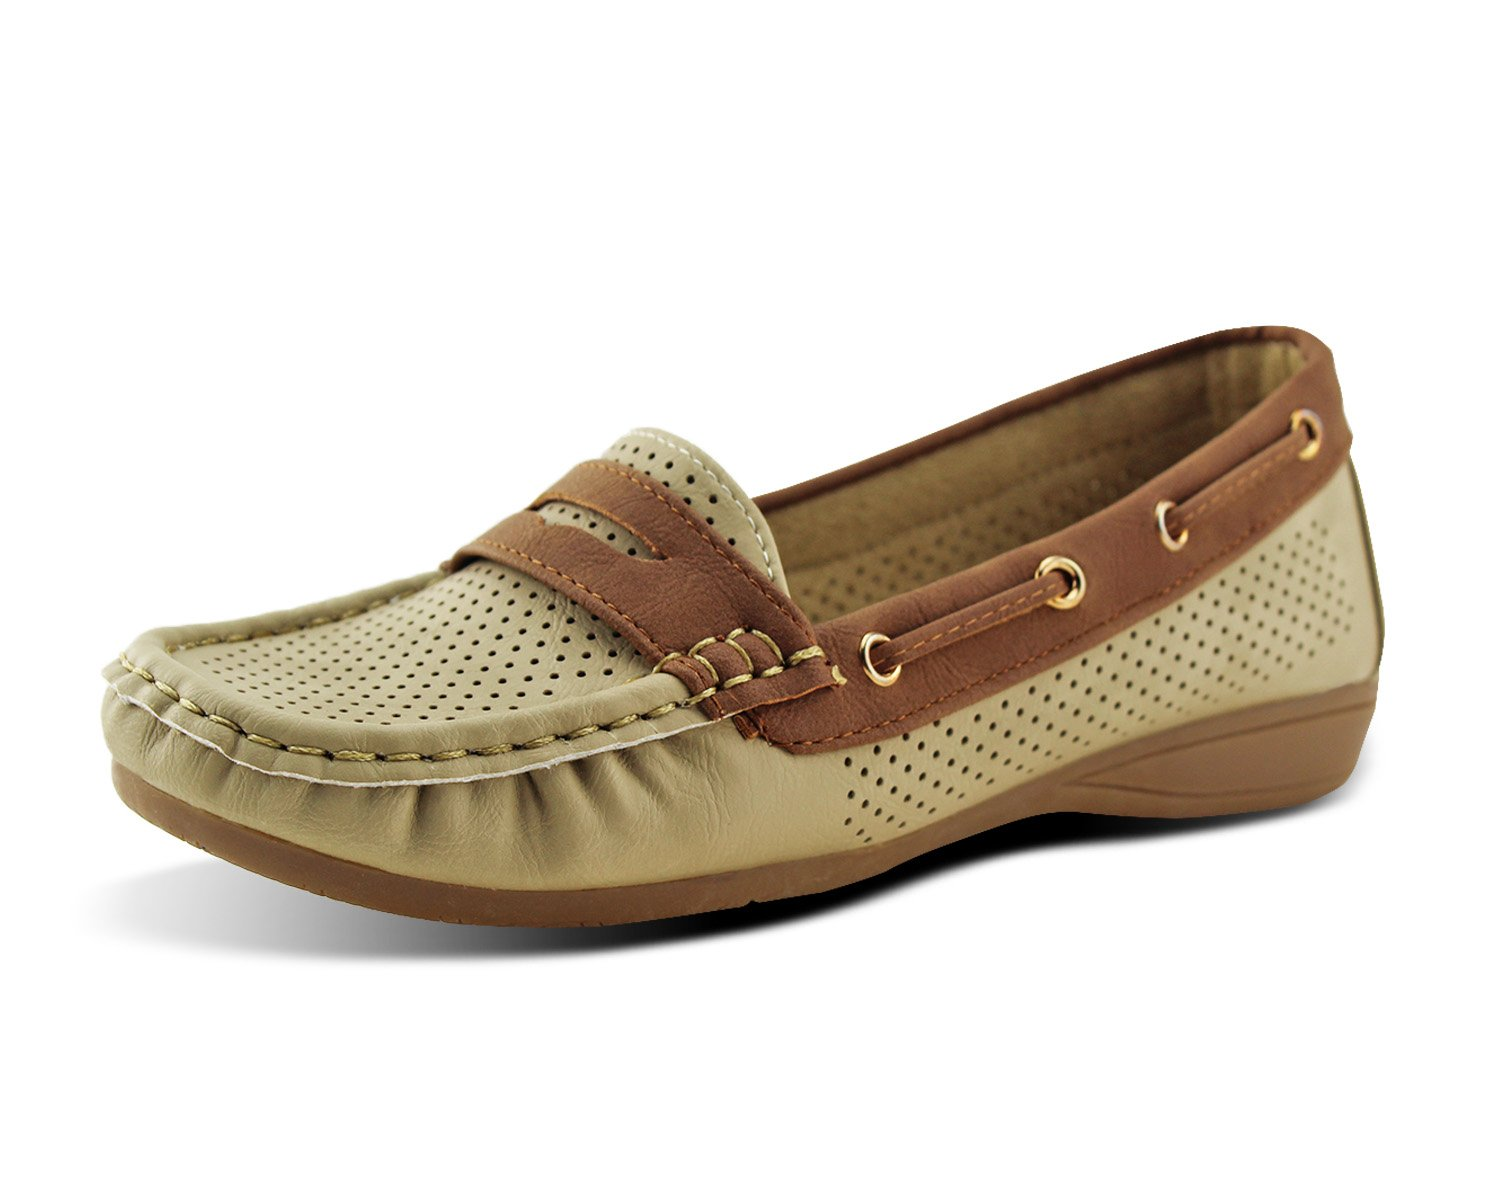 Jabasic Lady Comfort Slip-on Loafers Hollow Driving Flat Shoes(10,Beige)